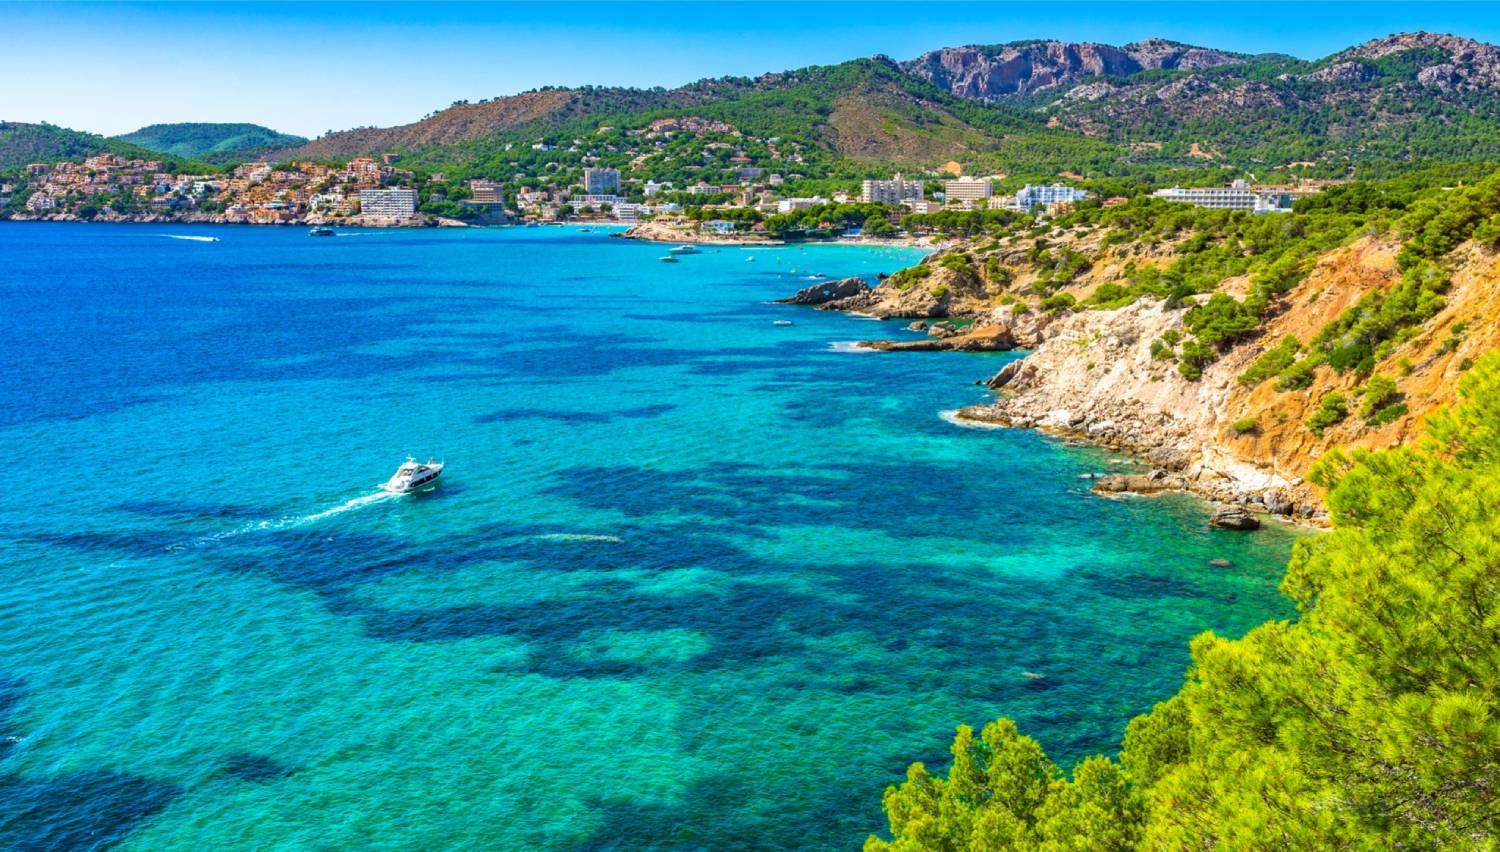 Mallorca - The Best Places To Visit In Spain